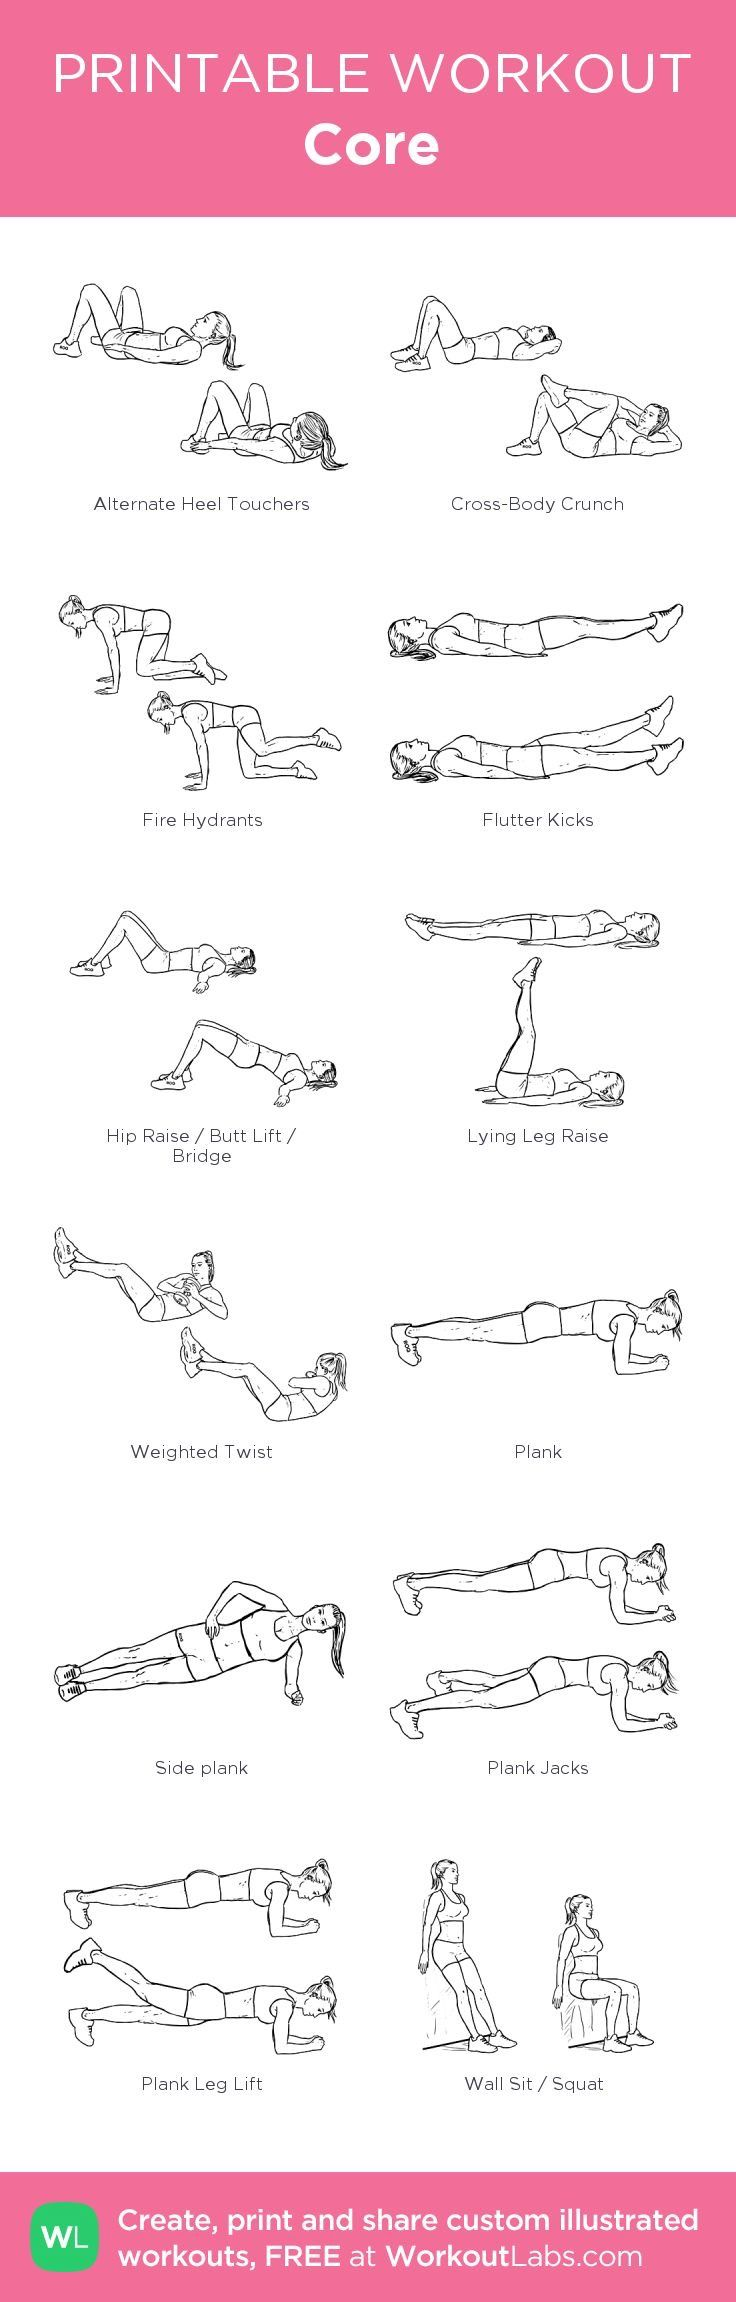 Core Workout | Posted by NewHowToLoseBellyFat.com